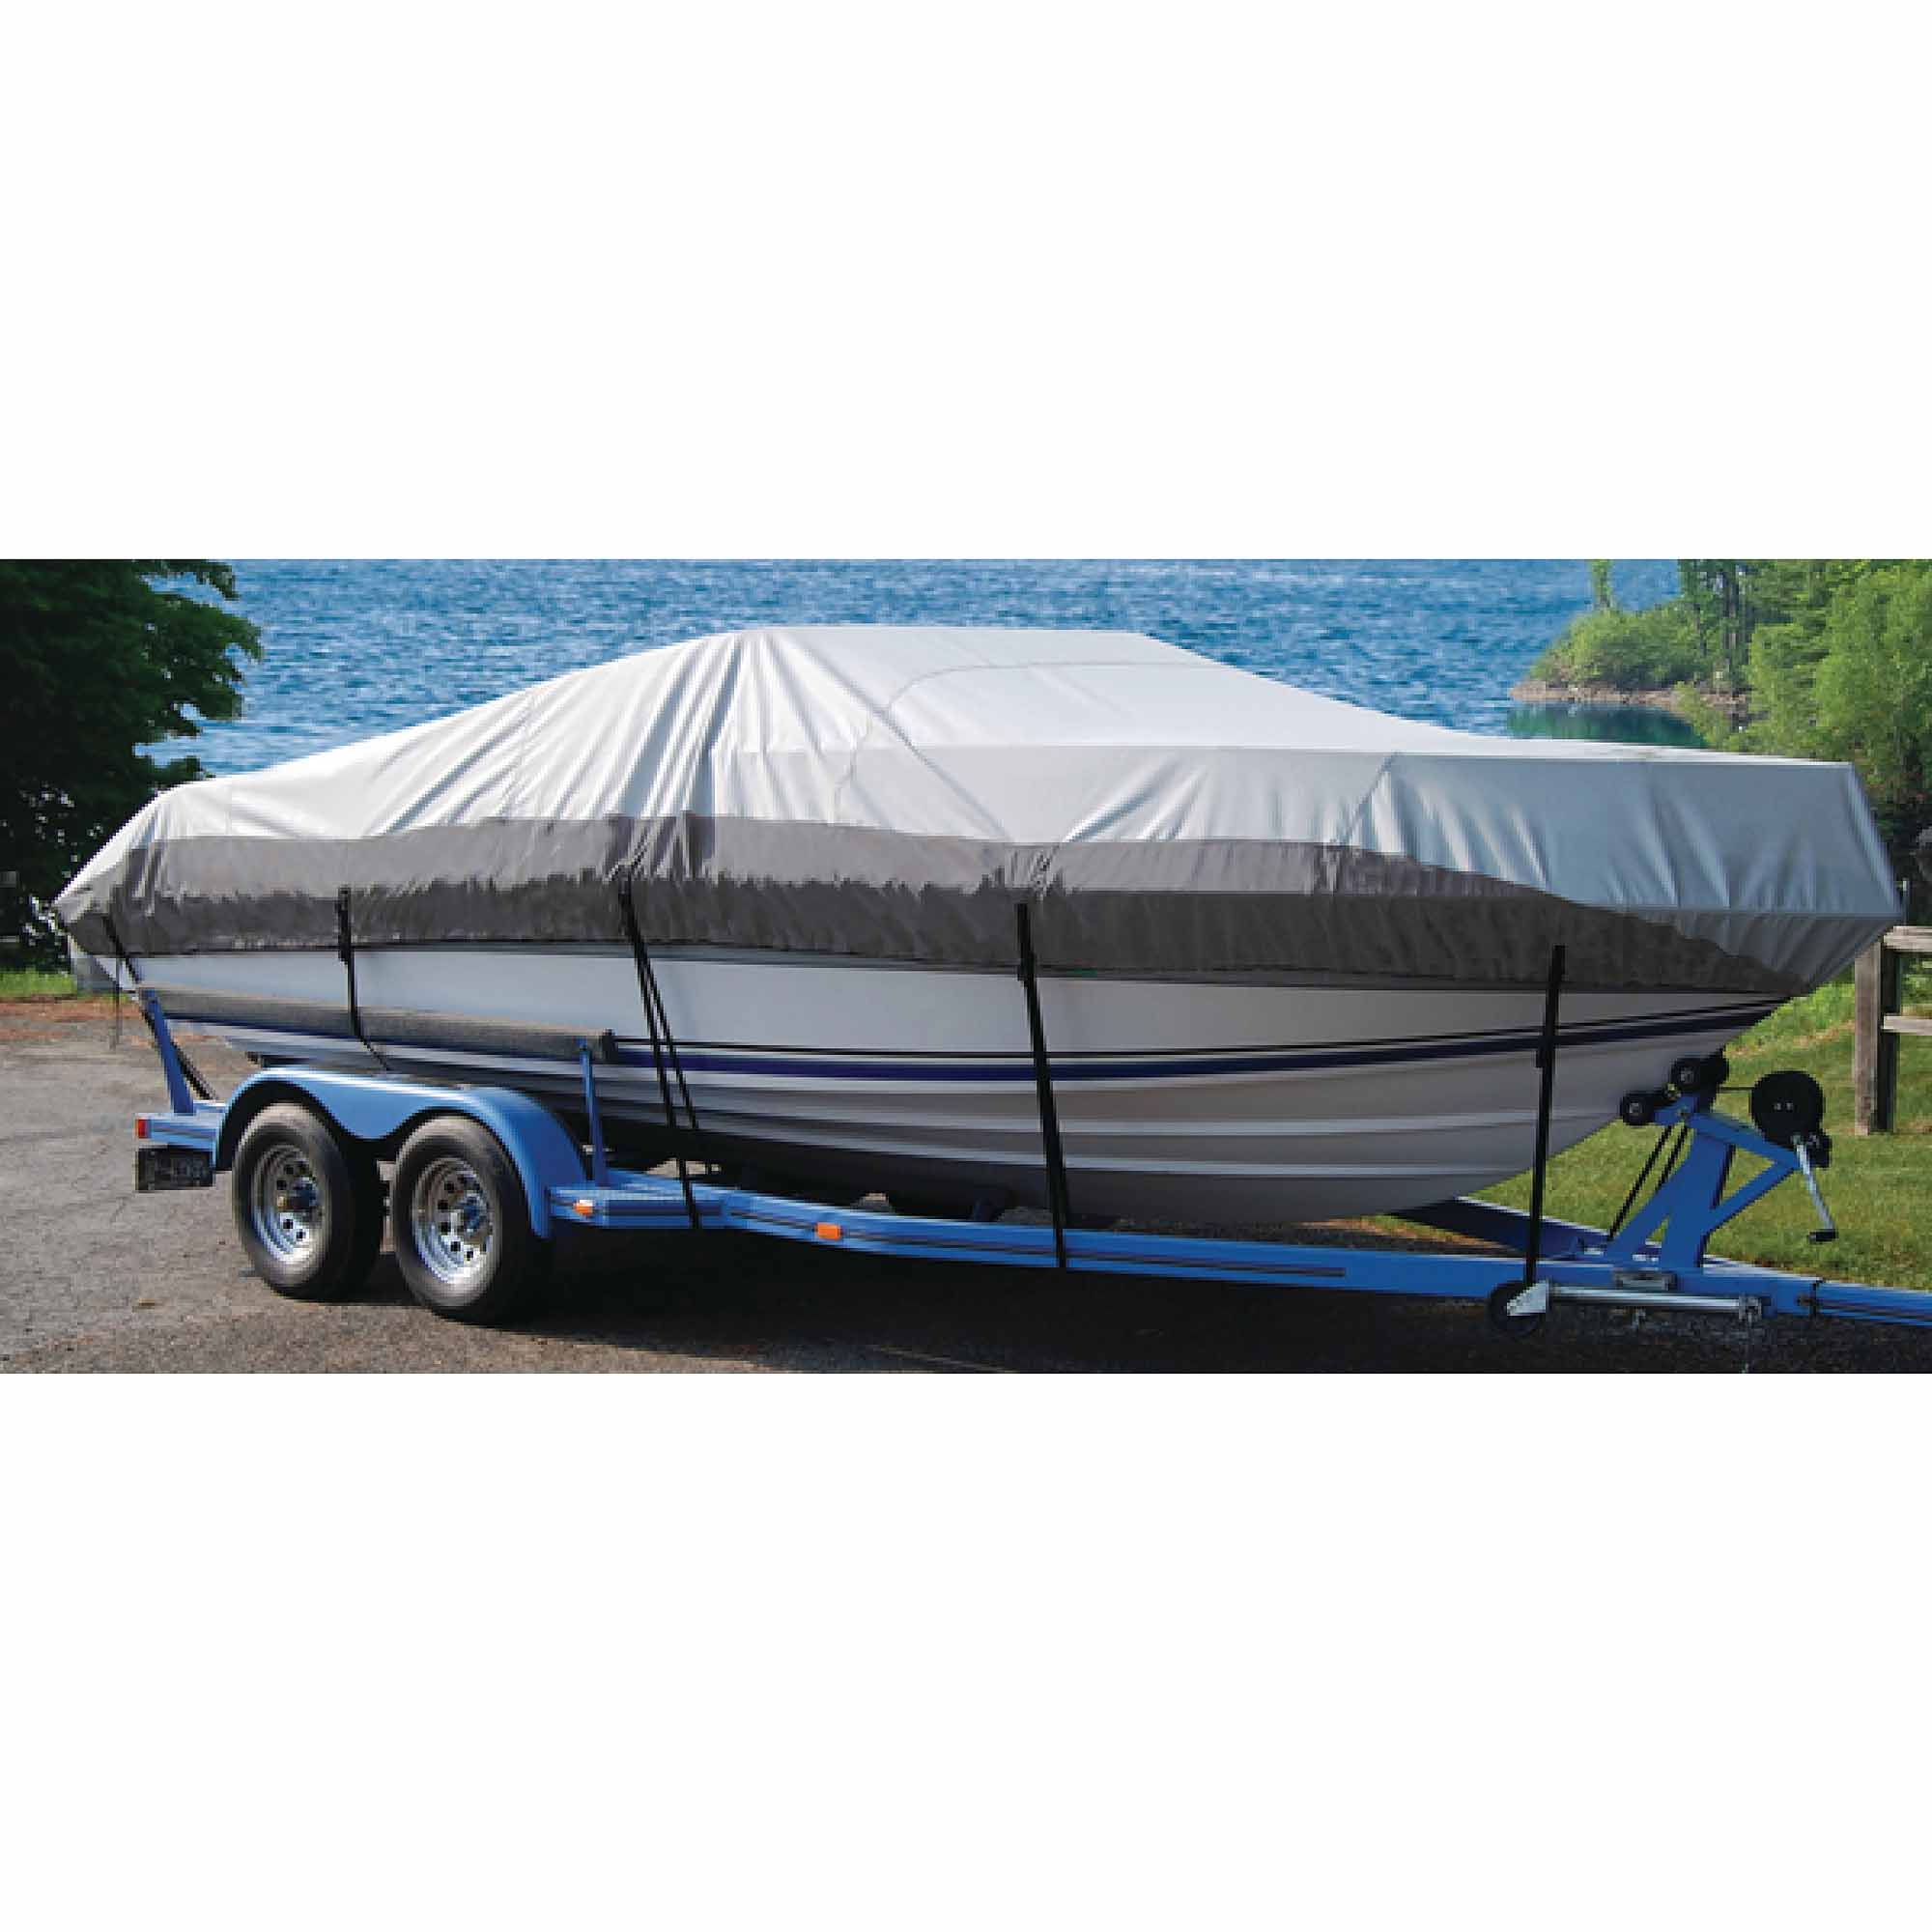 """Taylor Heavy Duty Polyester 2-Tone Color Fabric BoatGuard Eclipse Boat Cover with Storage Bag, Tie-Down Straps and Support Pole, Fits 14' to 16' Aluminum Fishing, Up to 75"""" Beam"""